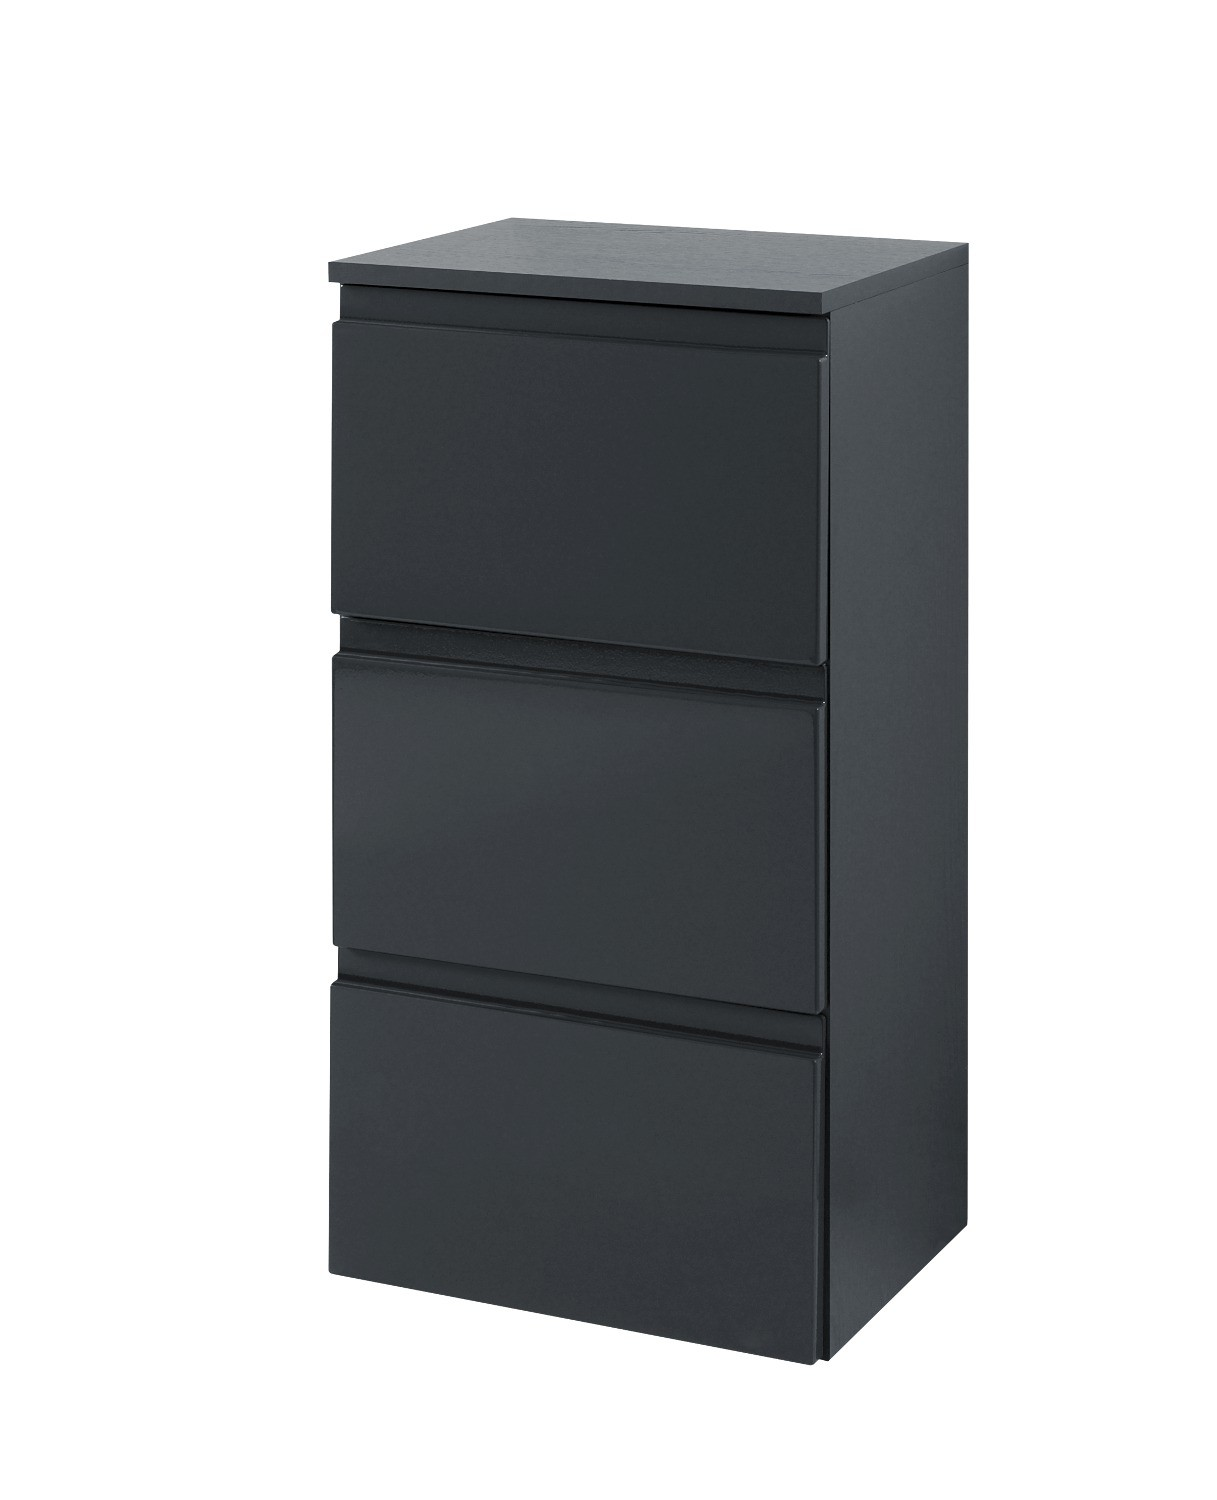 bad unterschrank cardiff 3 schubladen 40 cm breit. Black Bedroom Furniture Sets. Home Design Ideas